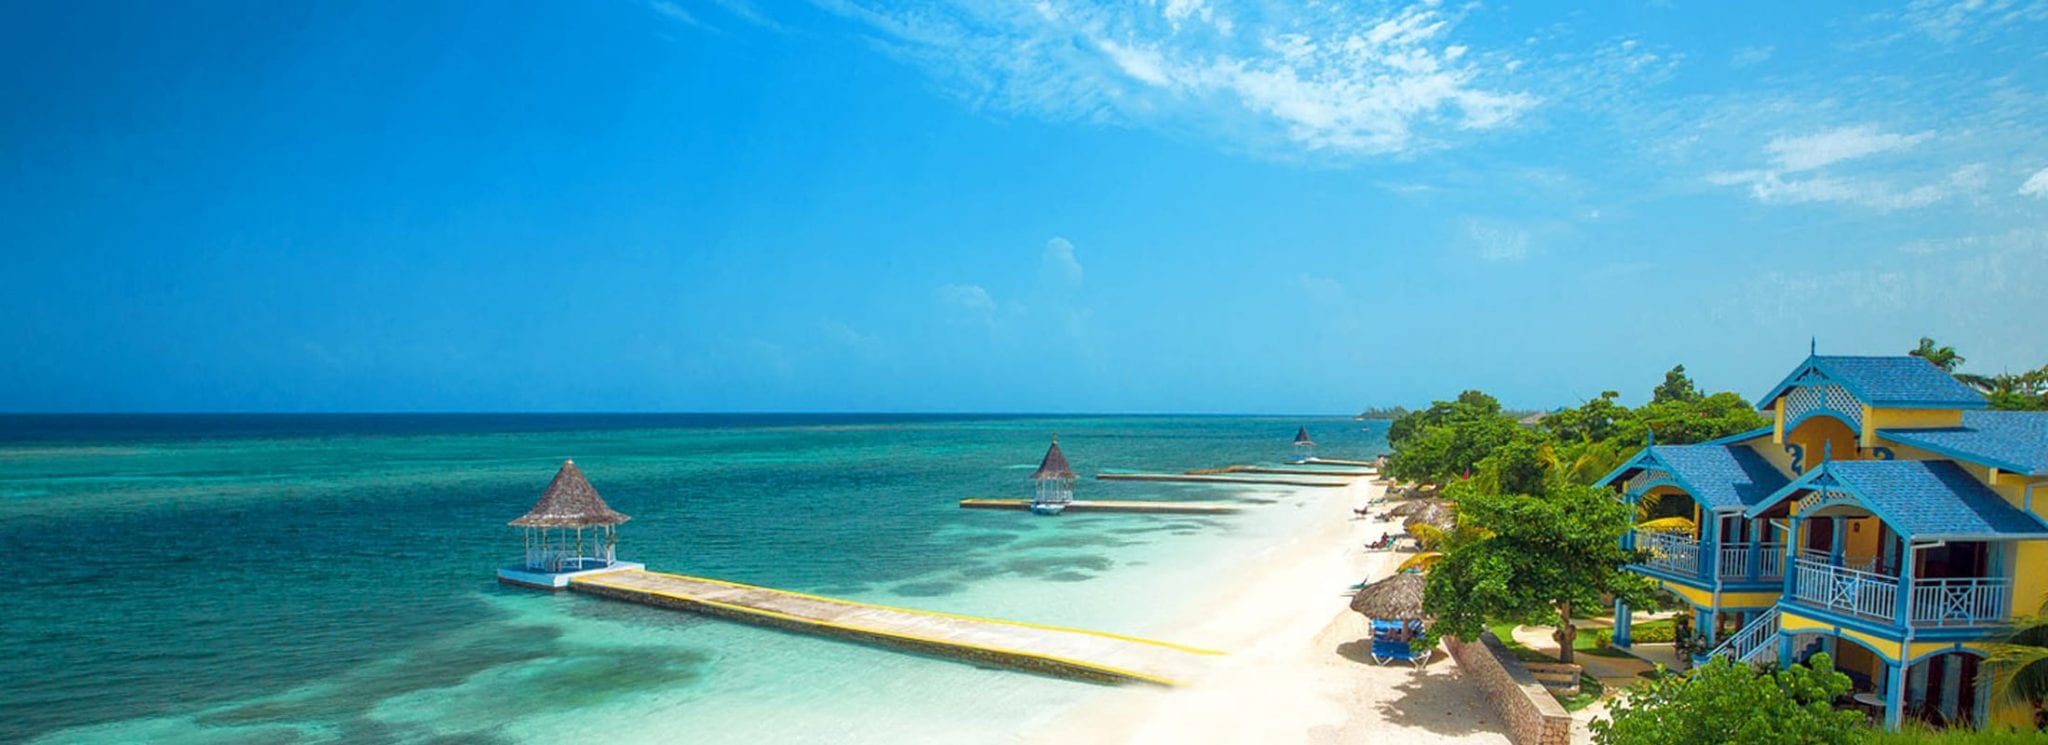 Sandals Resorts All Inclusive Vacation Packages For Couples